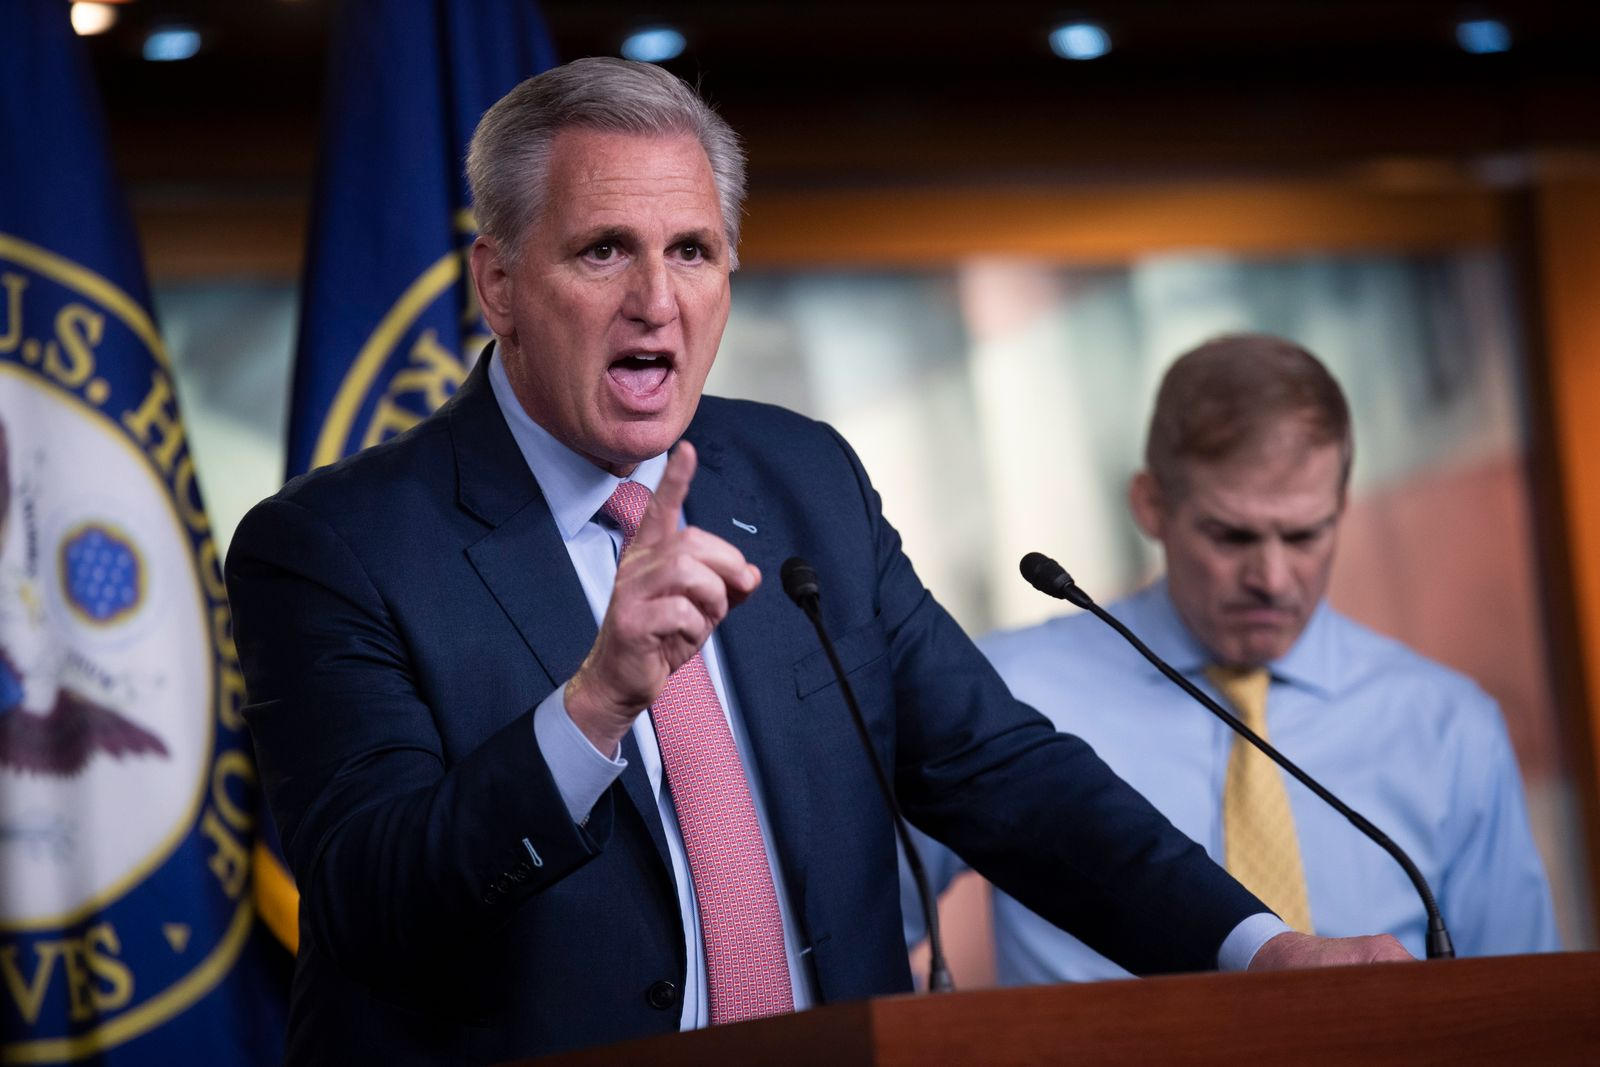 Speaker of the House Nancy Pelosi has rejected two top Republican lawmakers chosen by House Minority Leader Kevin McCarthy to sit on the special committee investigating the January 6 Capitol riot.